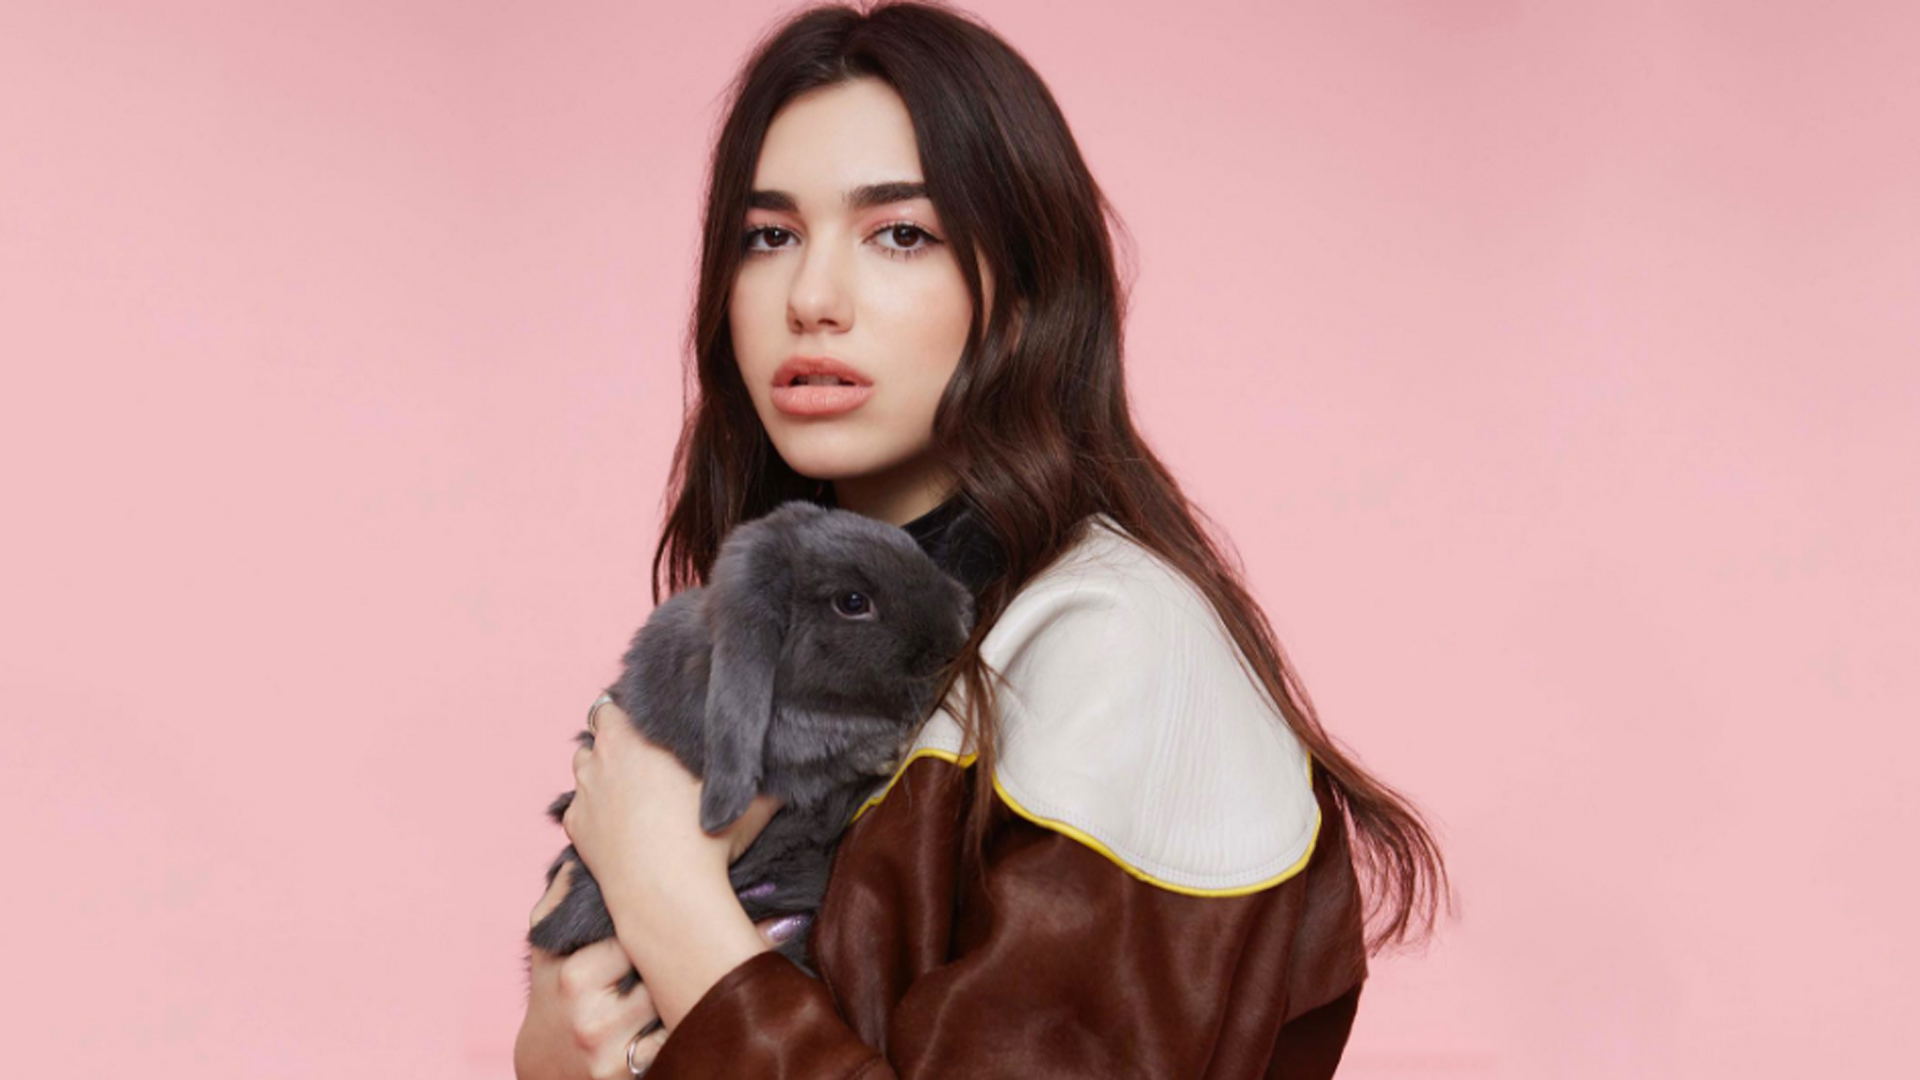 dua lipa wallpapers images photos pictures backgrounds